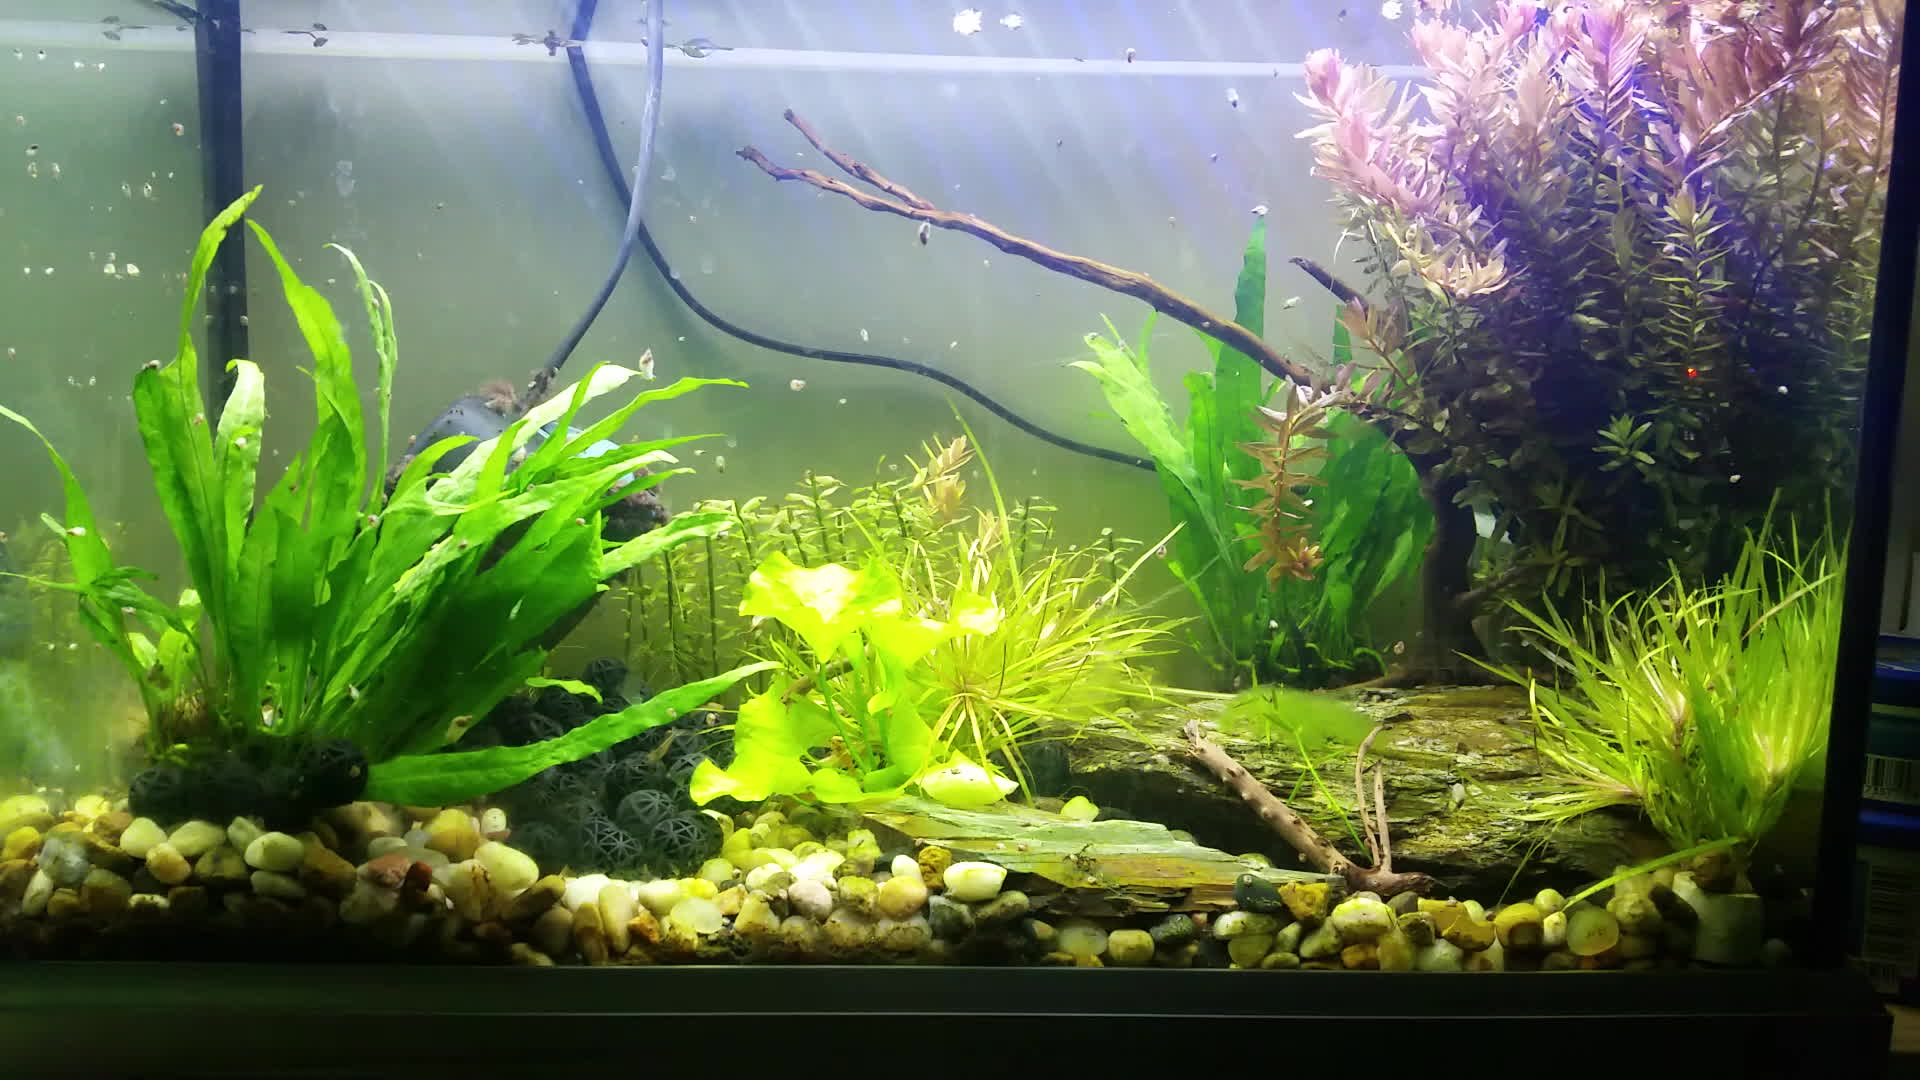 Planted Tank Gifs Search | Search & Share on Homdor